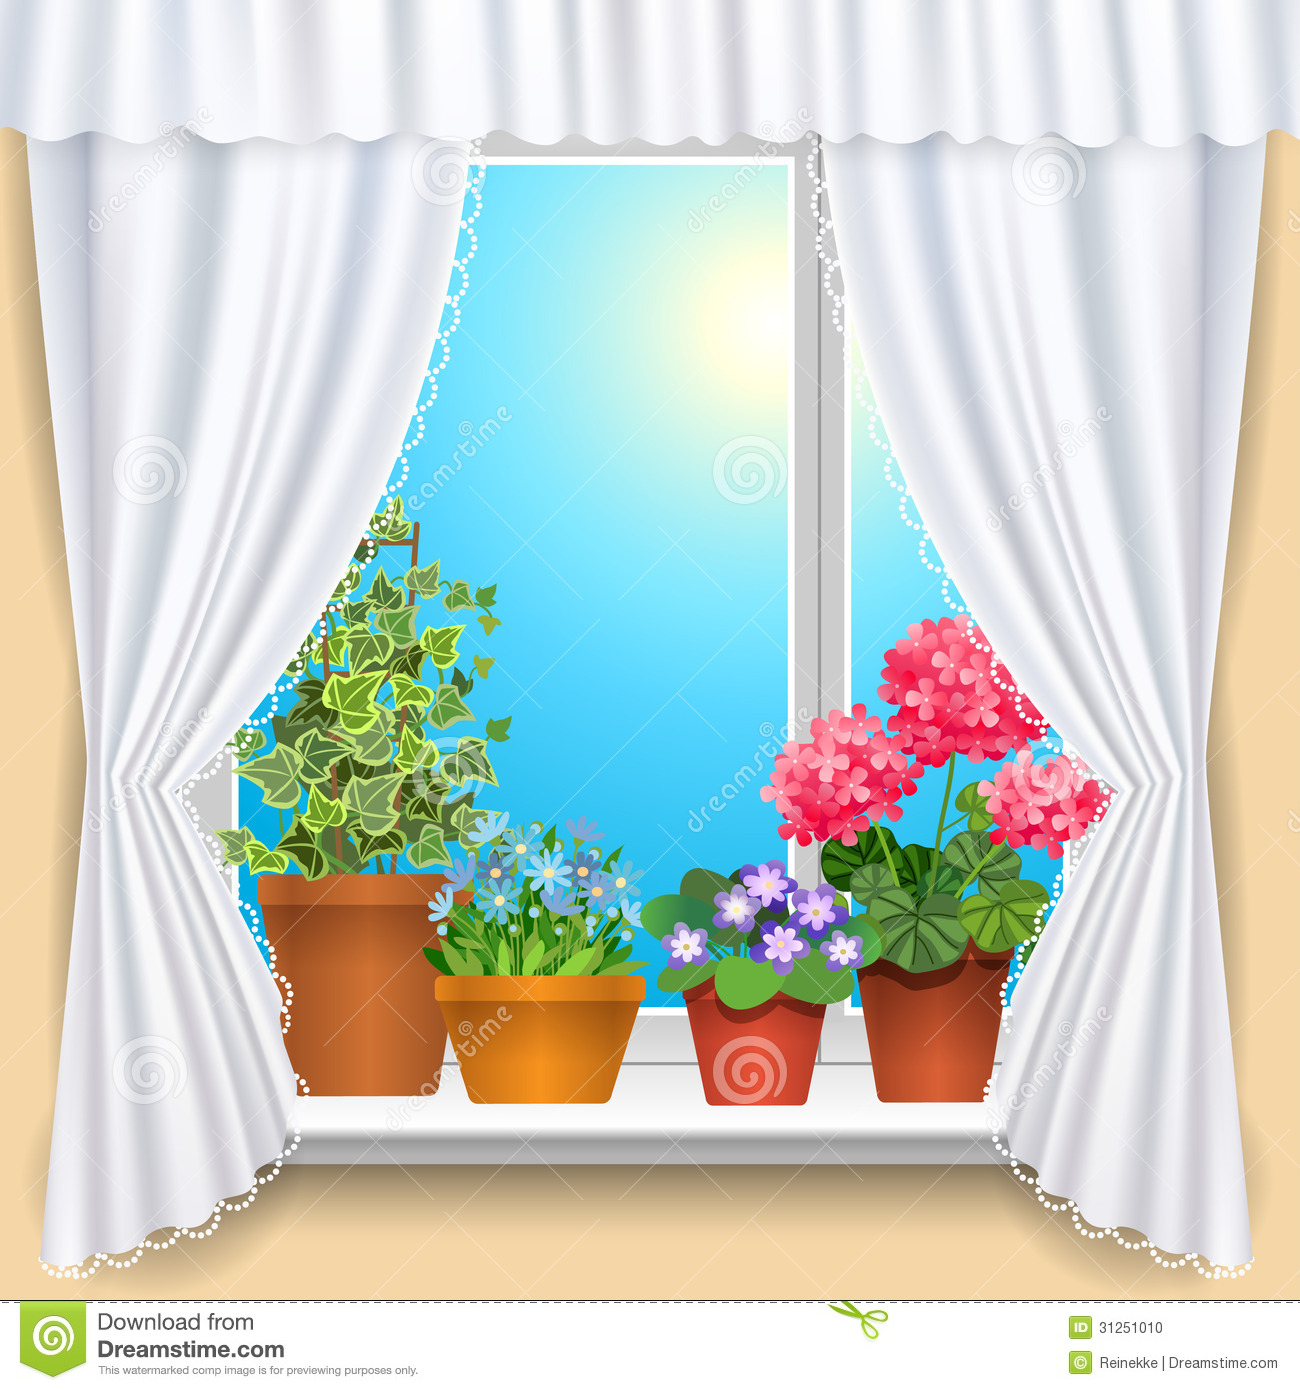 Window Curtains Clipart for Window With Curtains Clipart  557yll